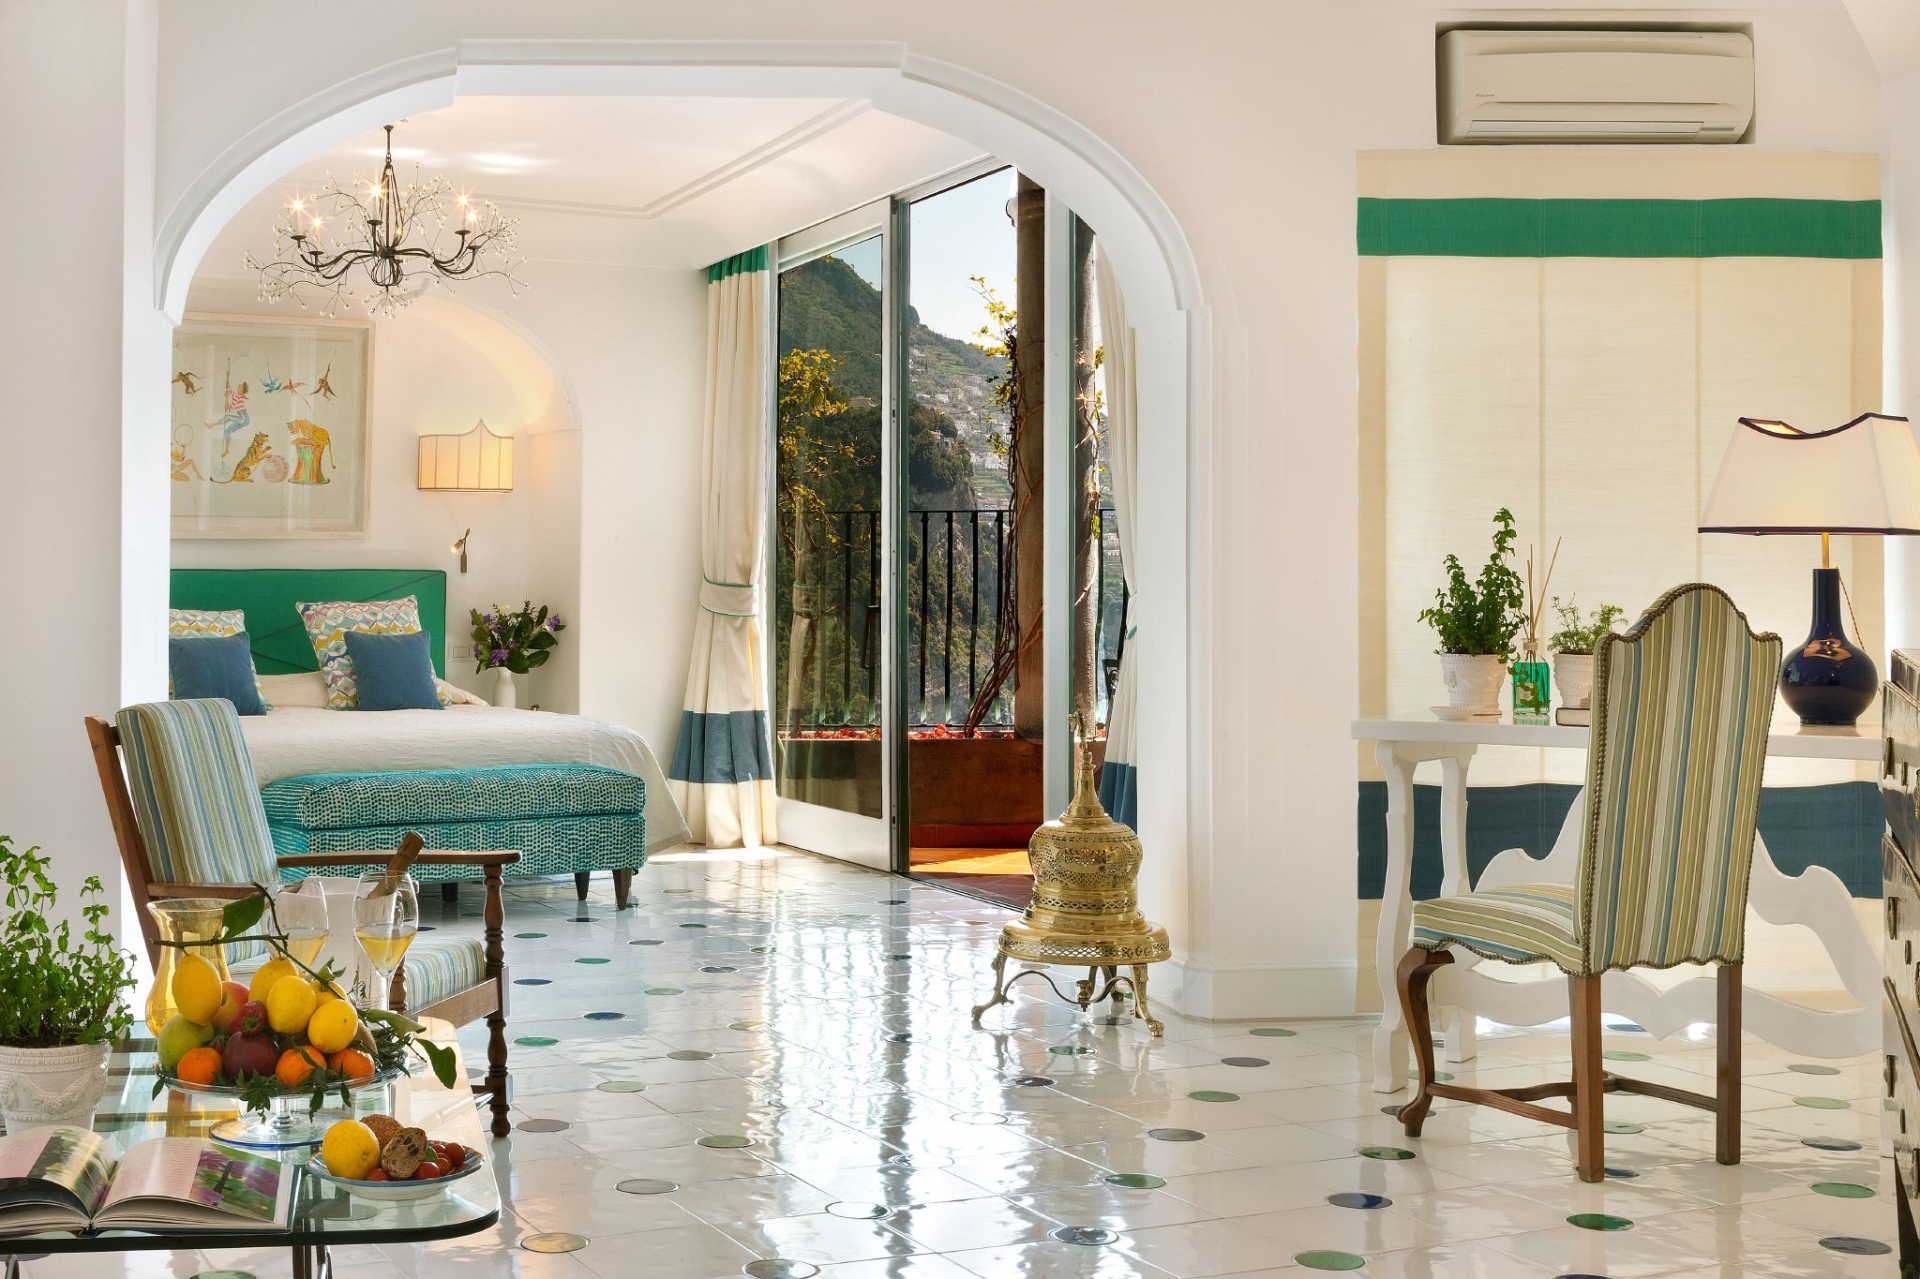 Where to stay: Il San Pietro di Positano